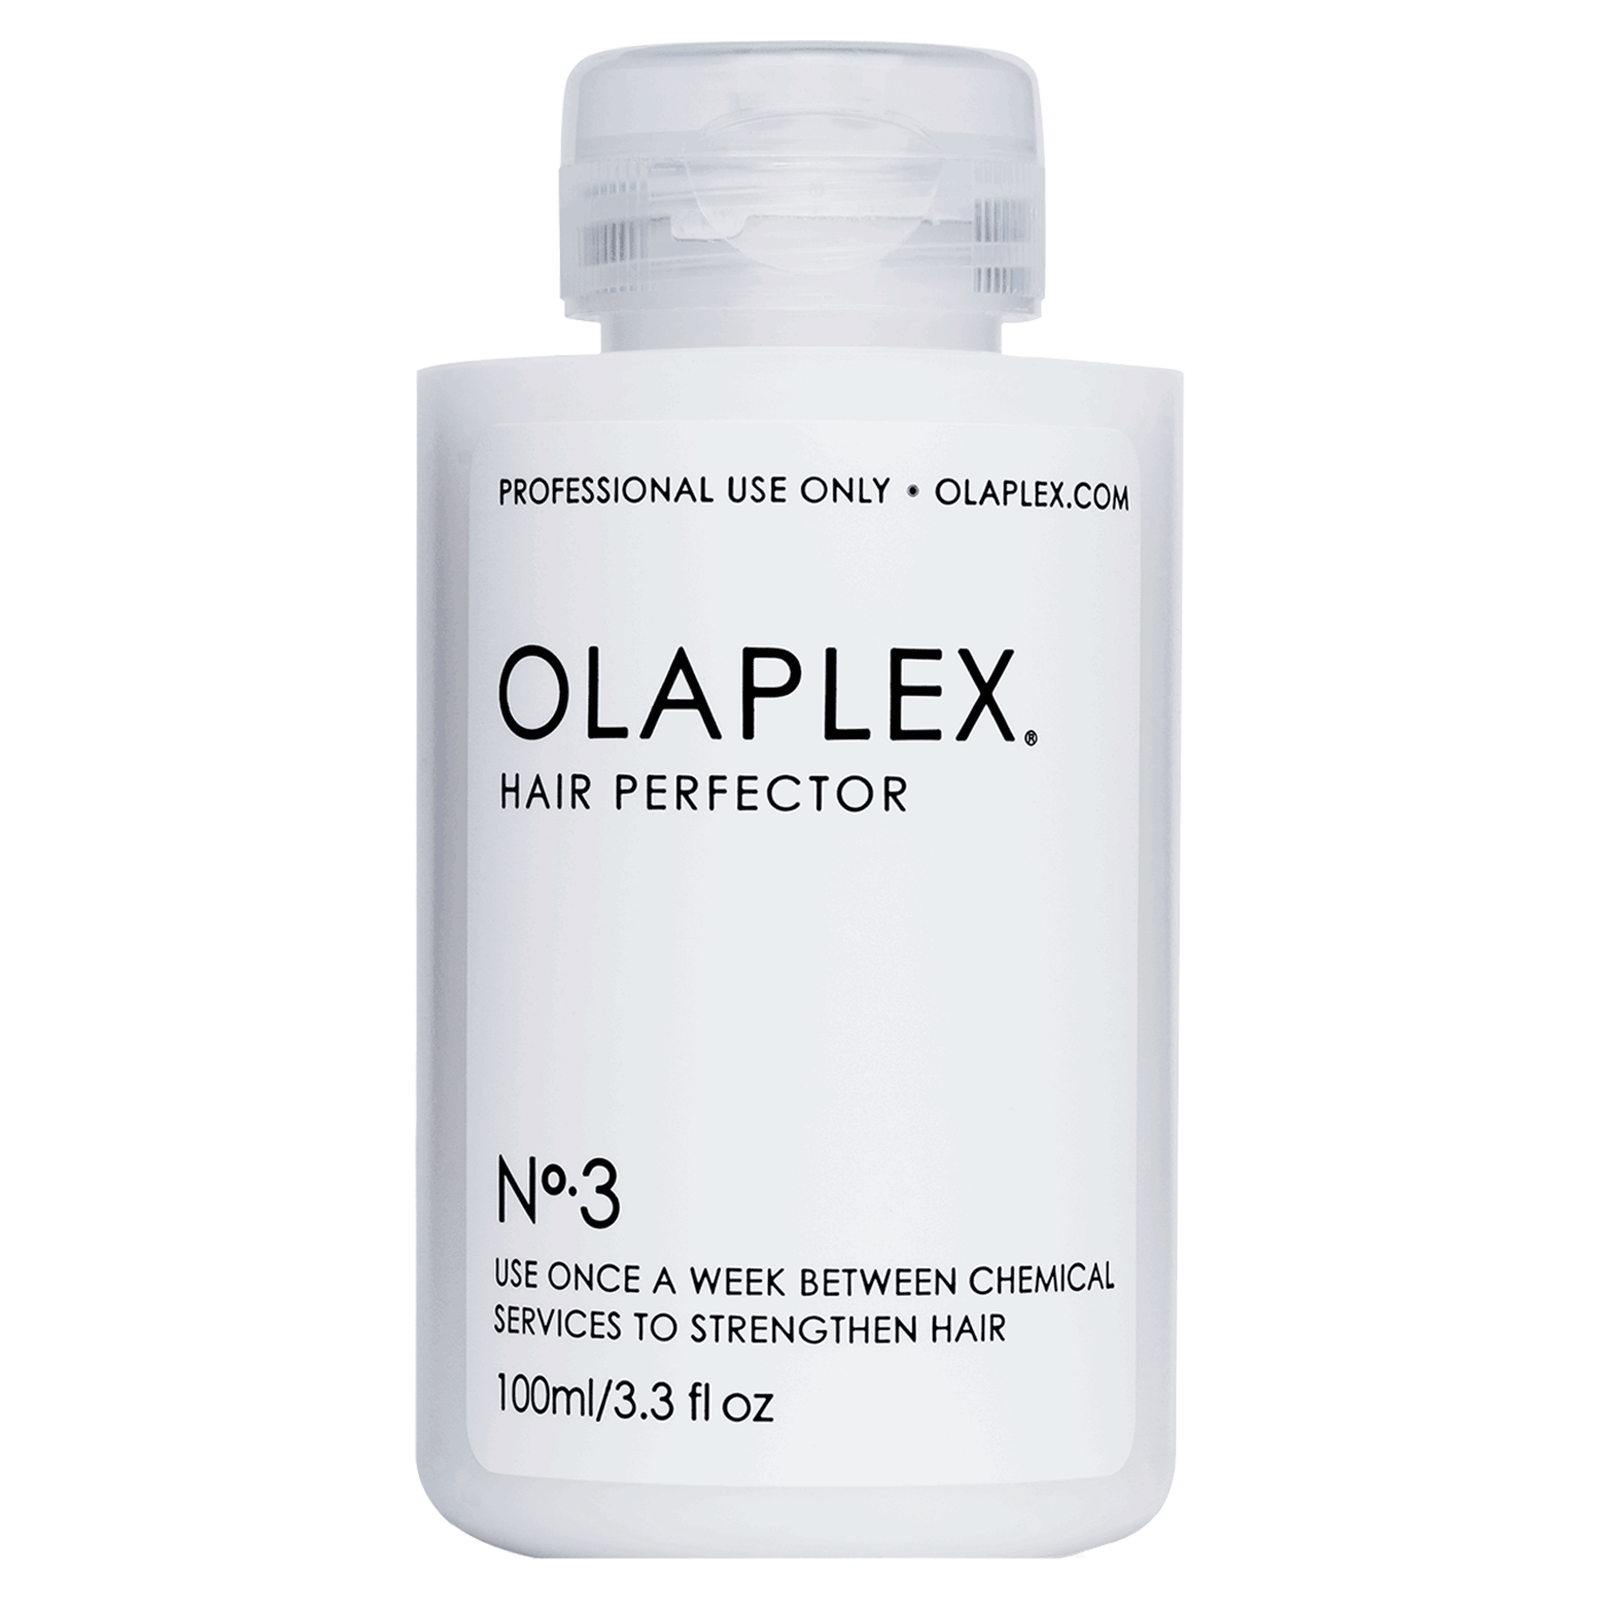 Olaplex No. 3 Hair Perfector Take Home